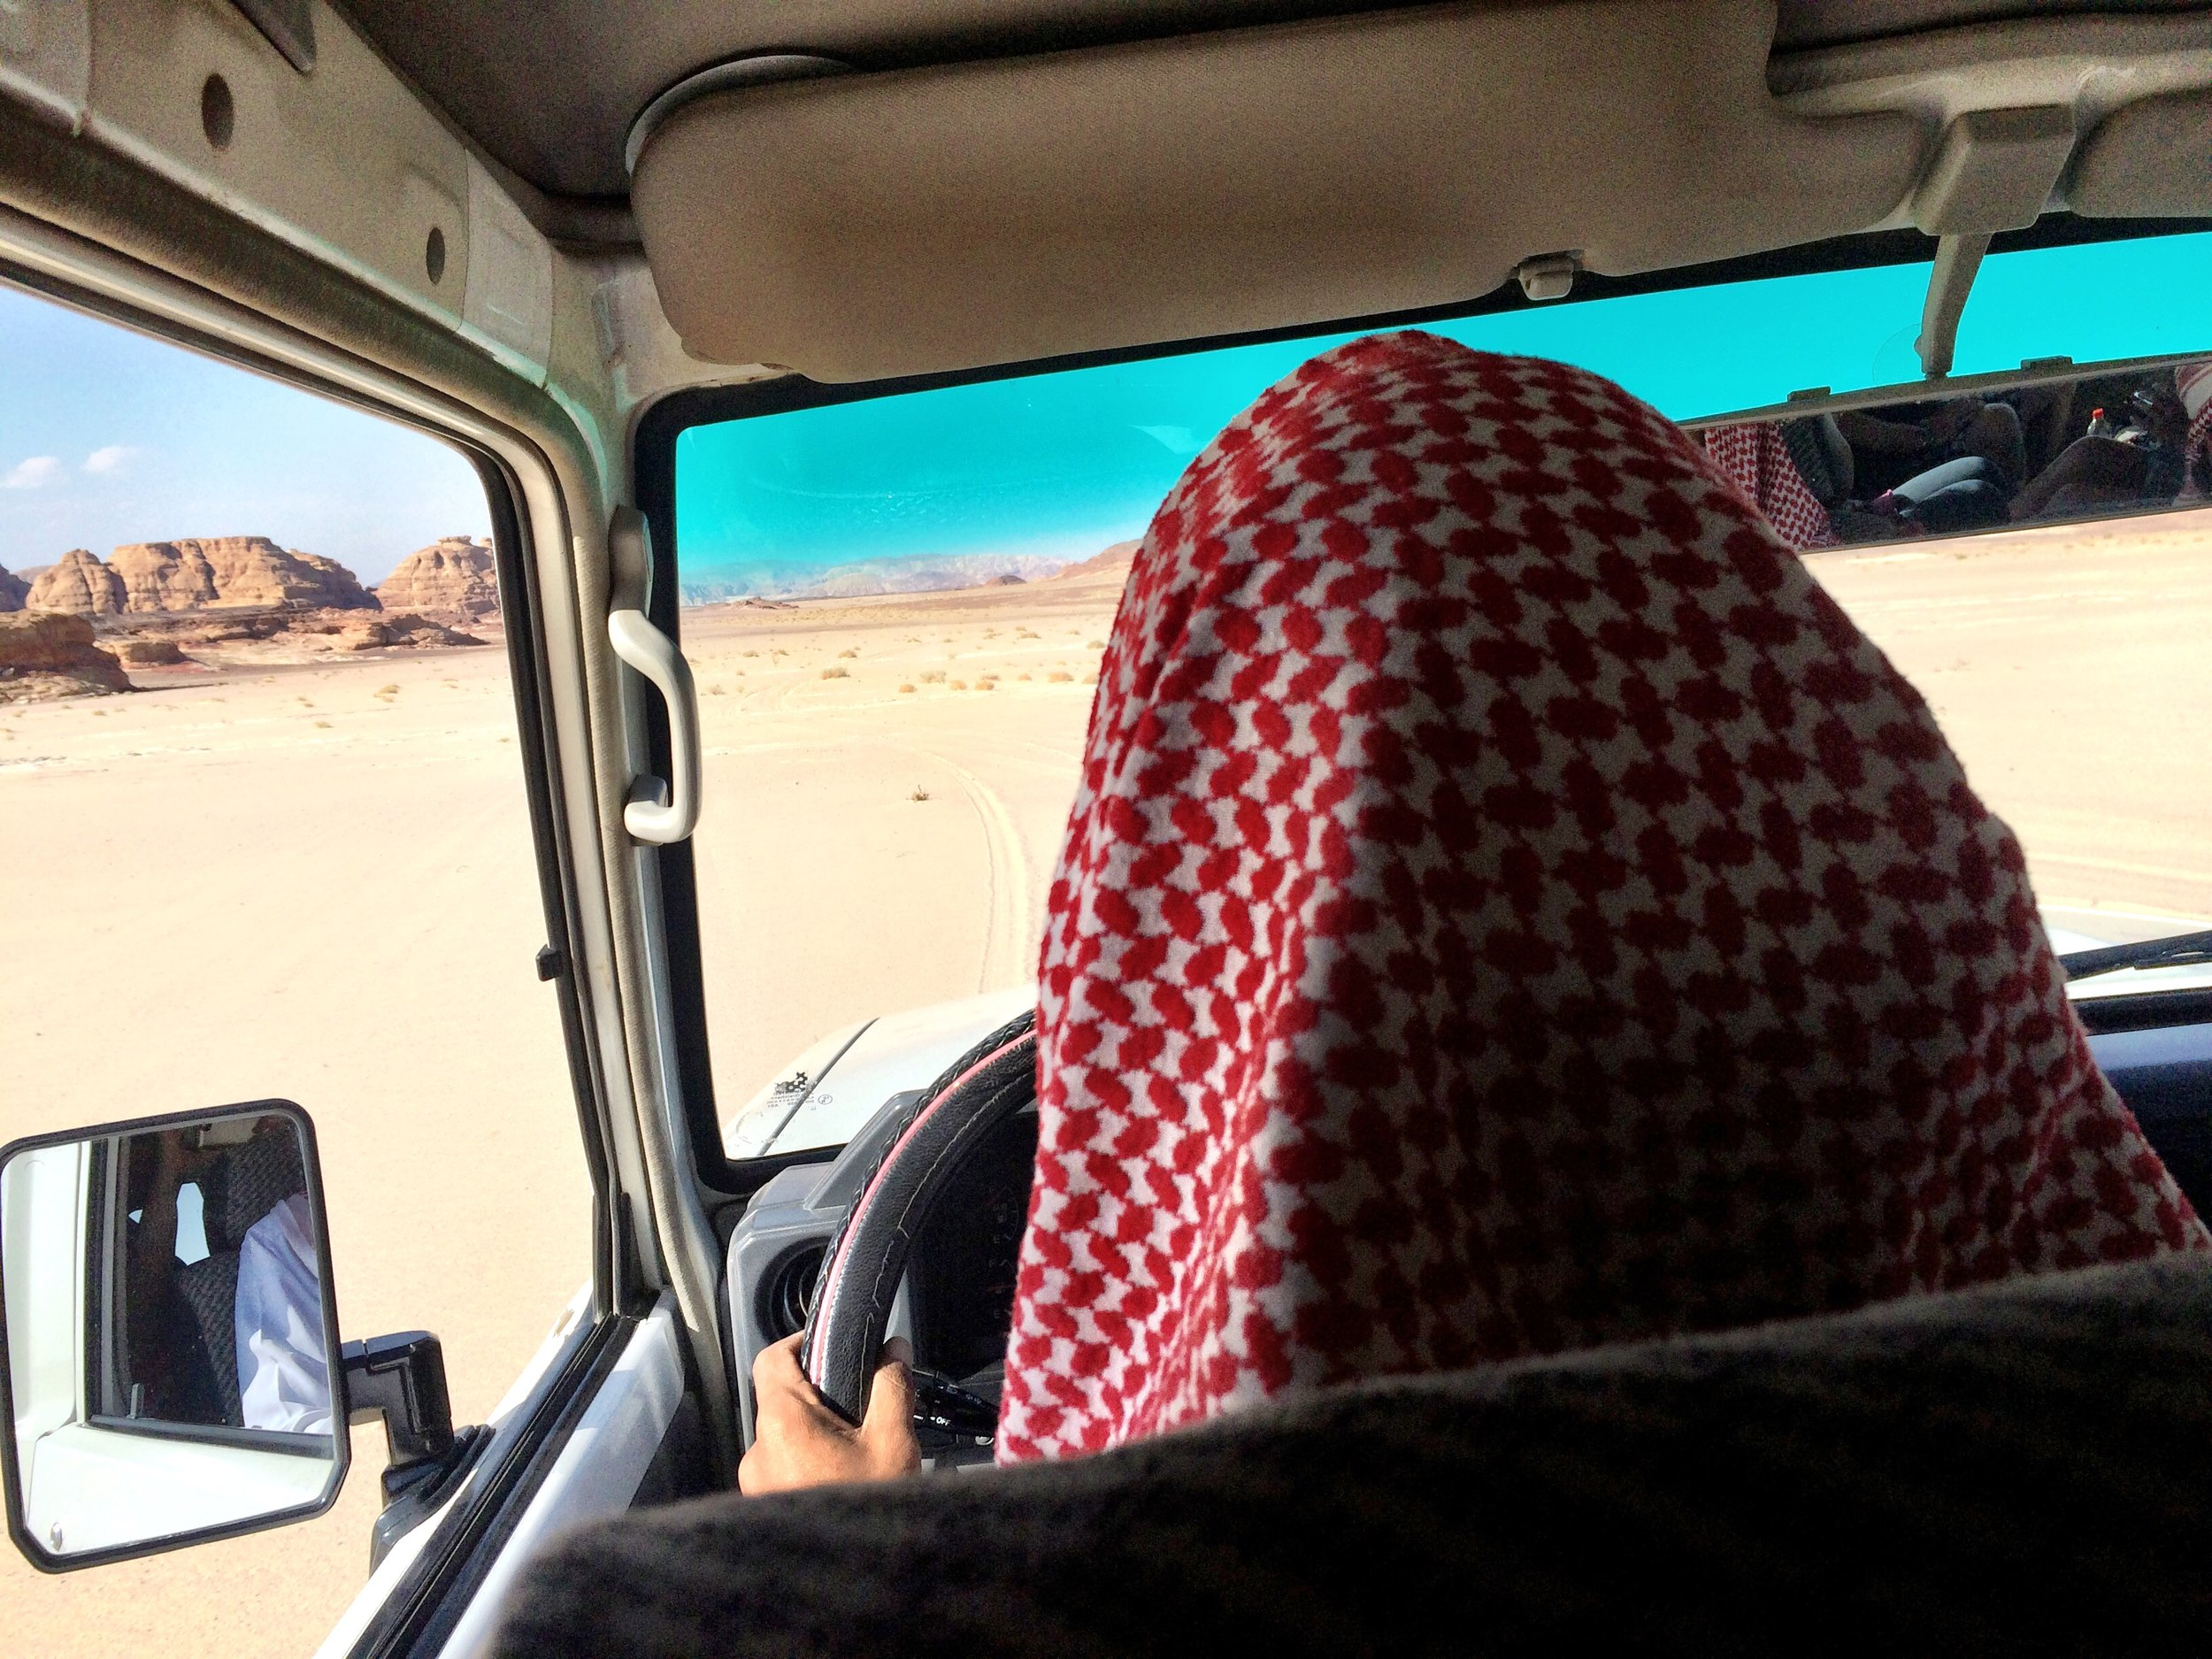 Bedouin Guides